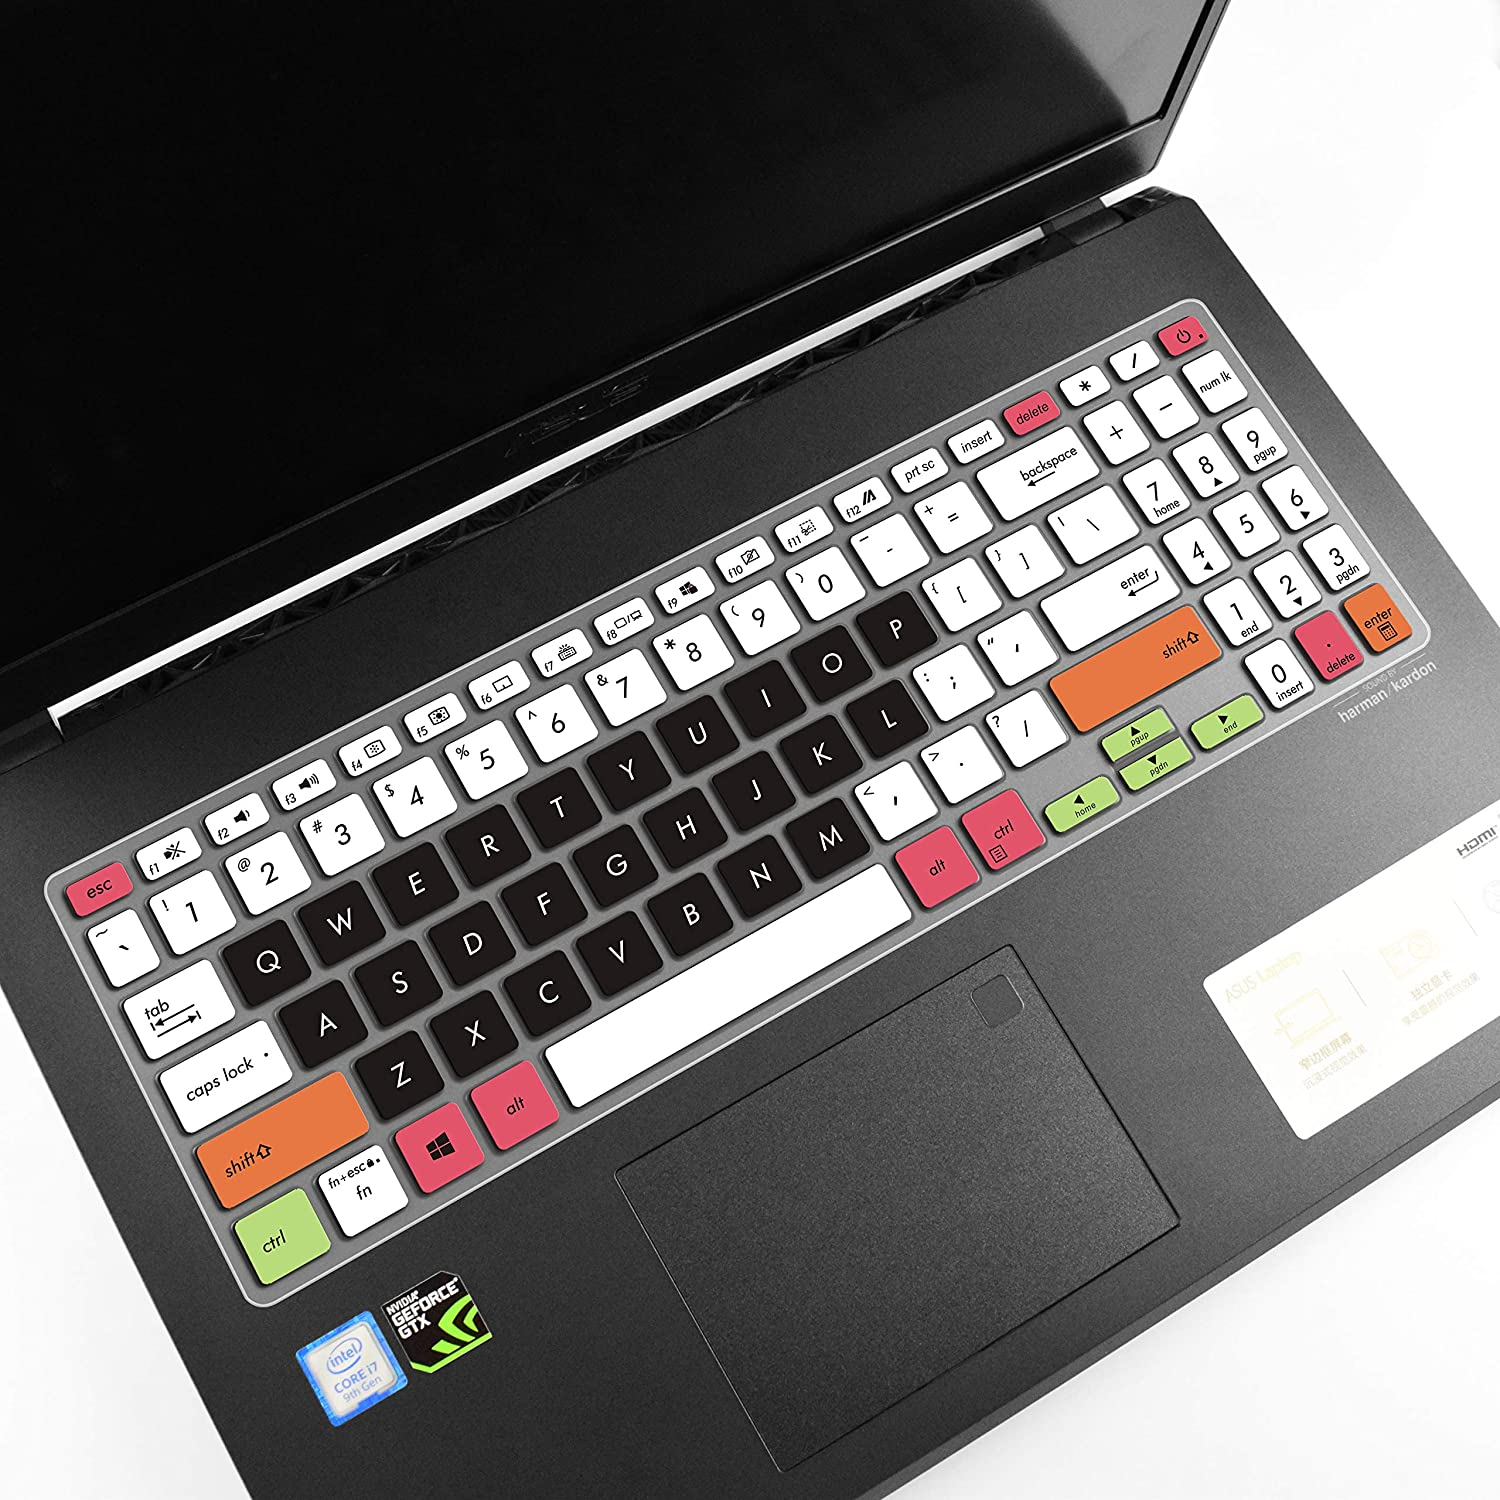 Leze White Black Ultra Thin Keyboard Cover Skin Compatible with 15.6 Asus Vivobook S15 S532 Thin /& Light Laptop